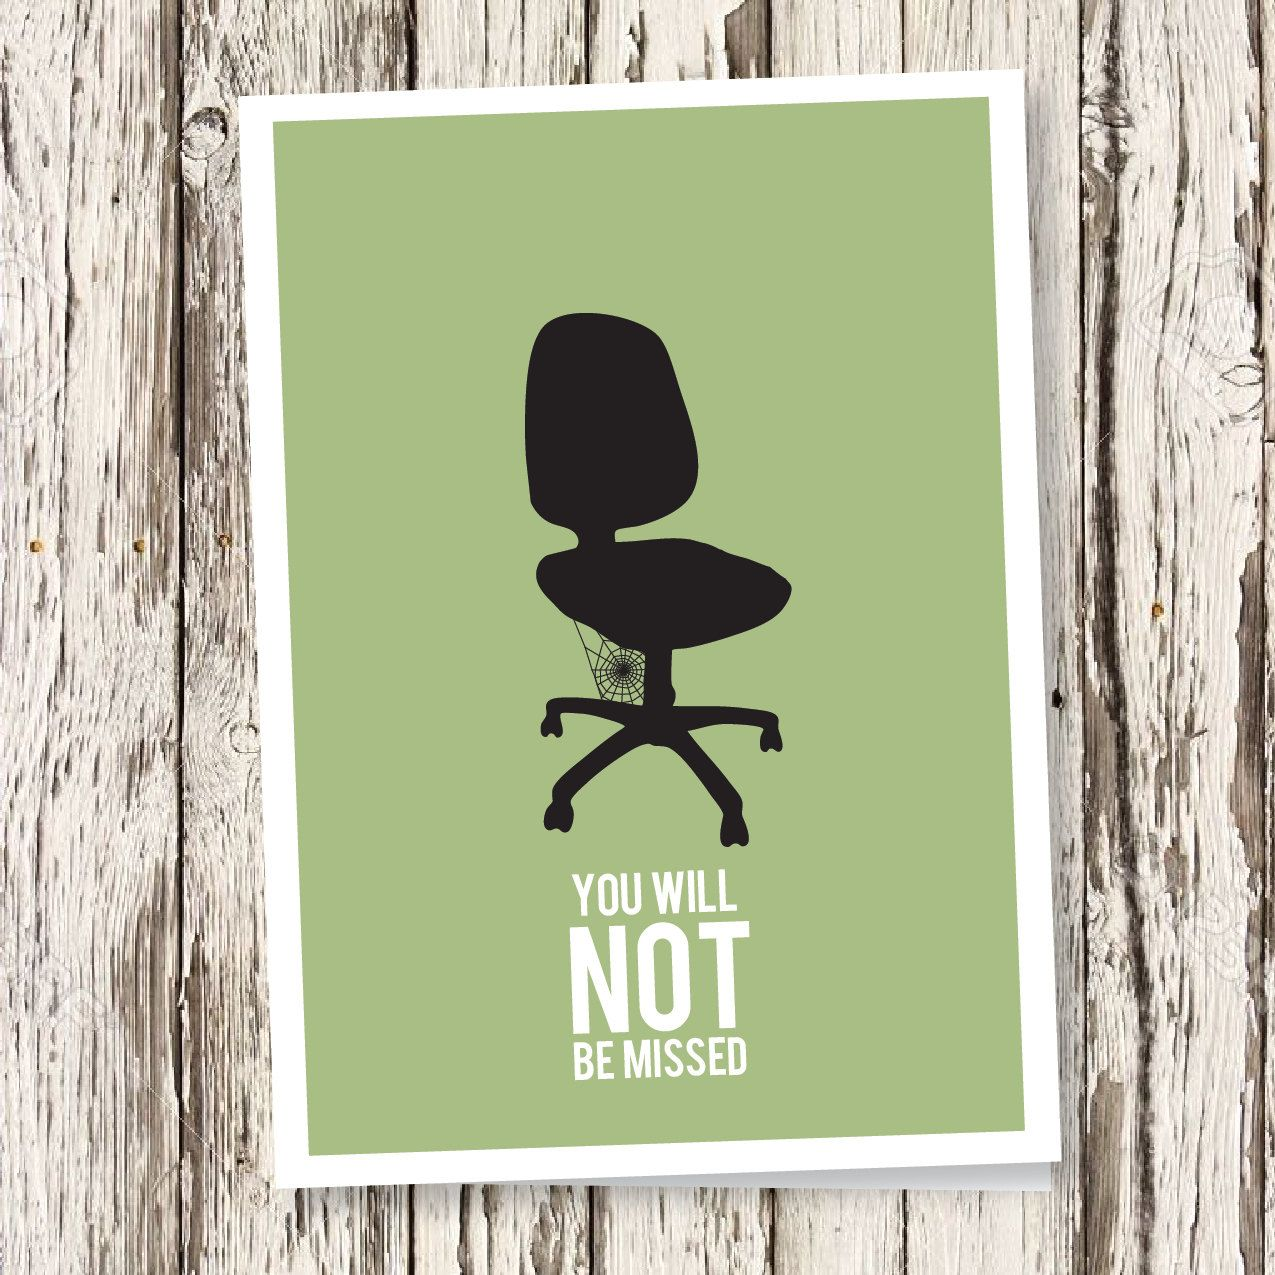 Say farewell to your colleague with this DIY printable